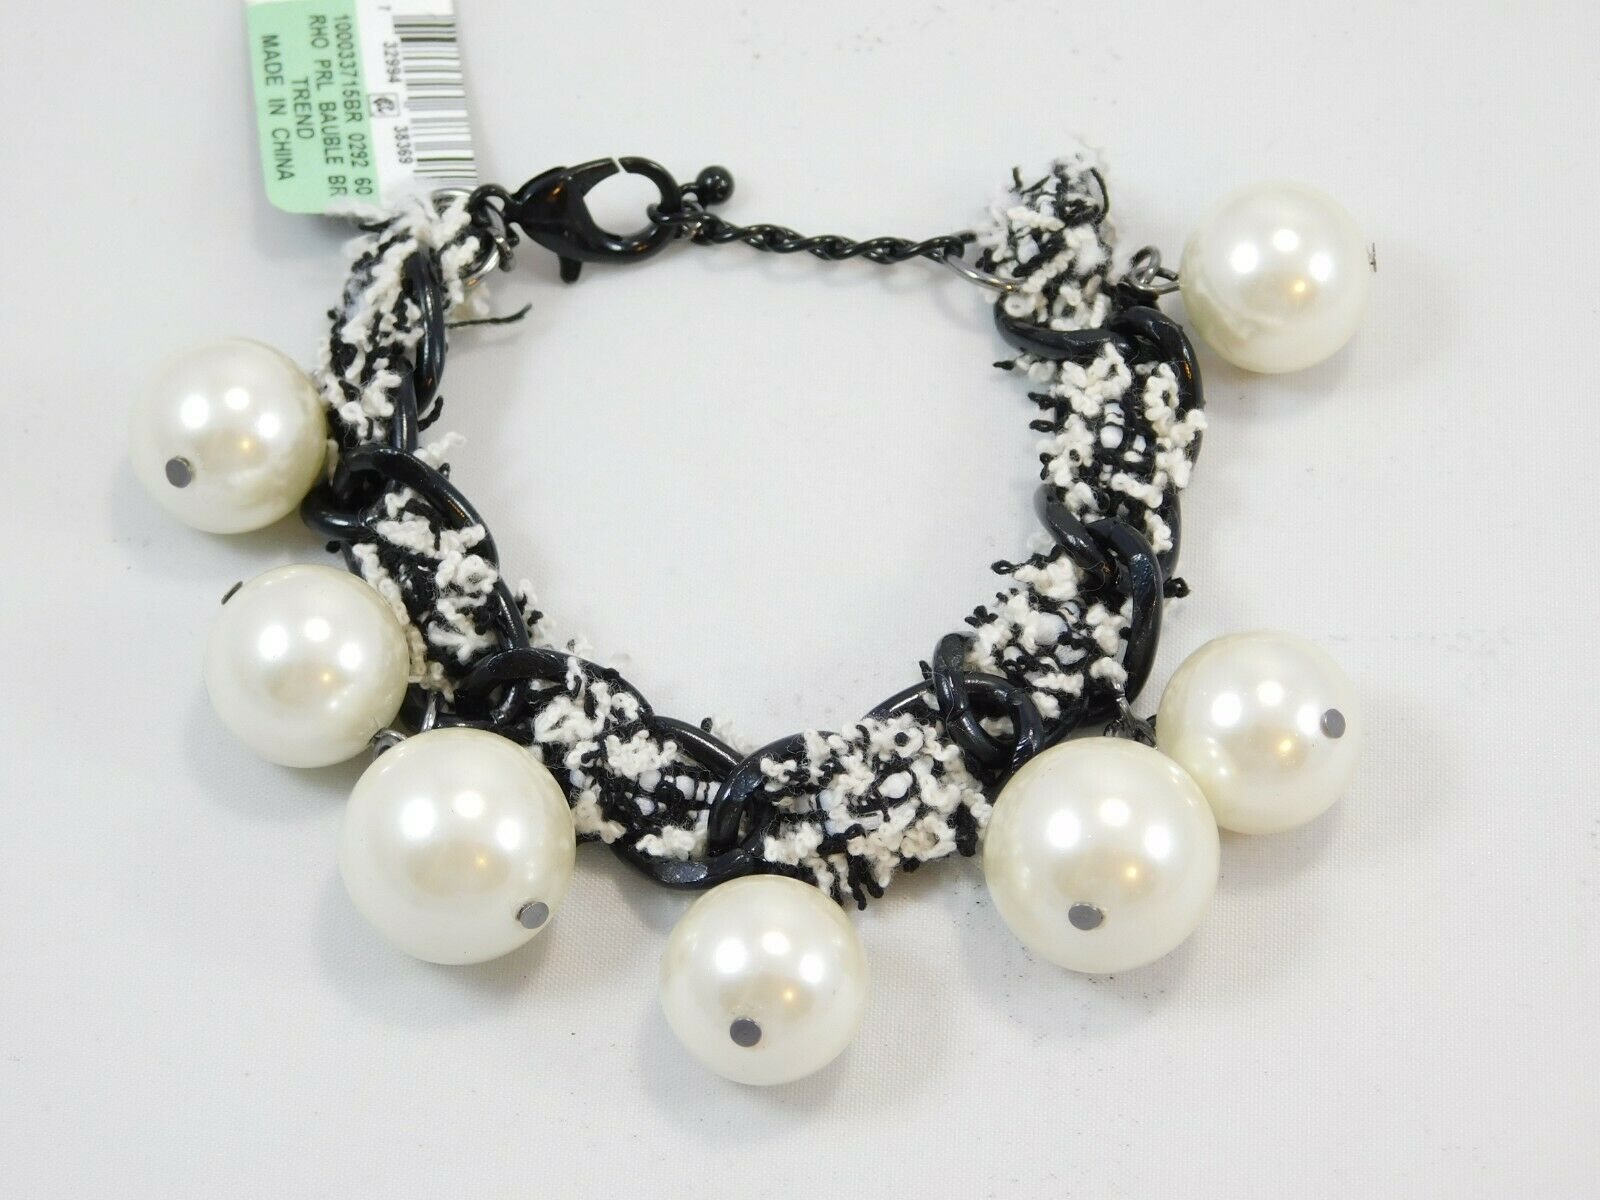 I.N.C. Silver-Tone Imitation Pearl Fabric-Weaved Flex Bracelet